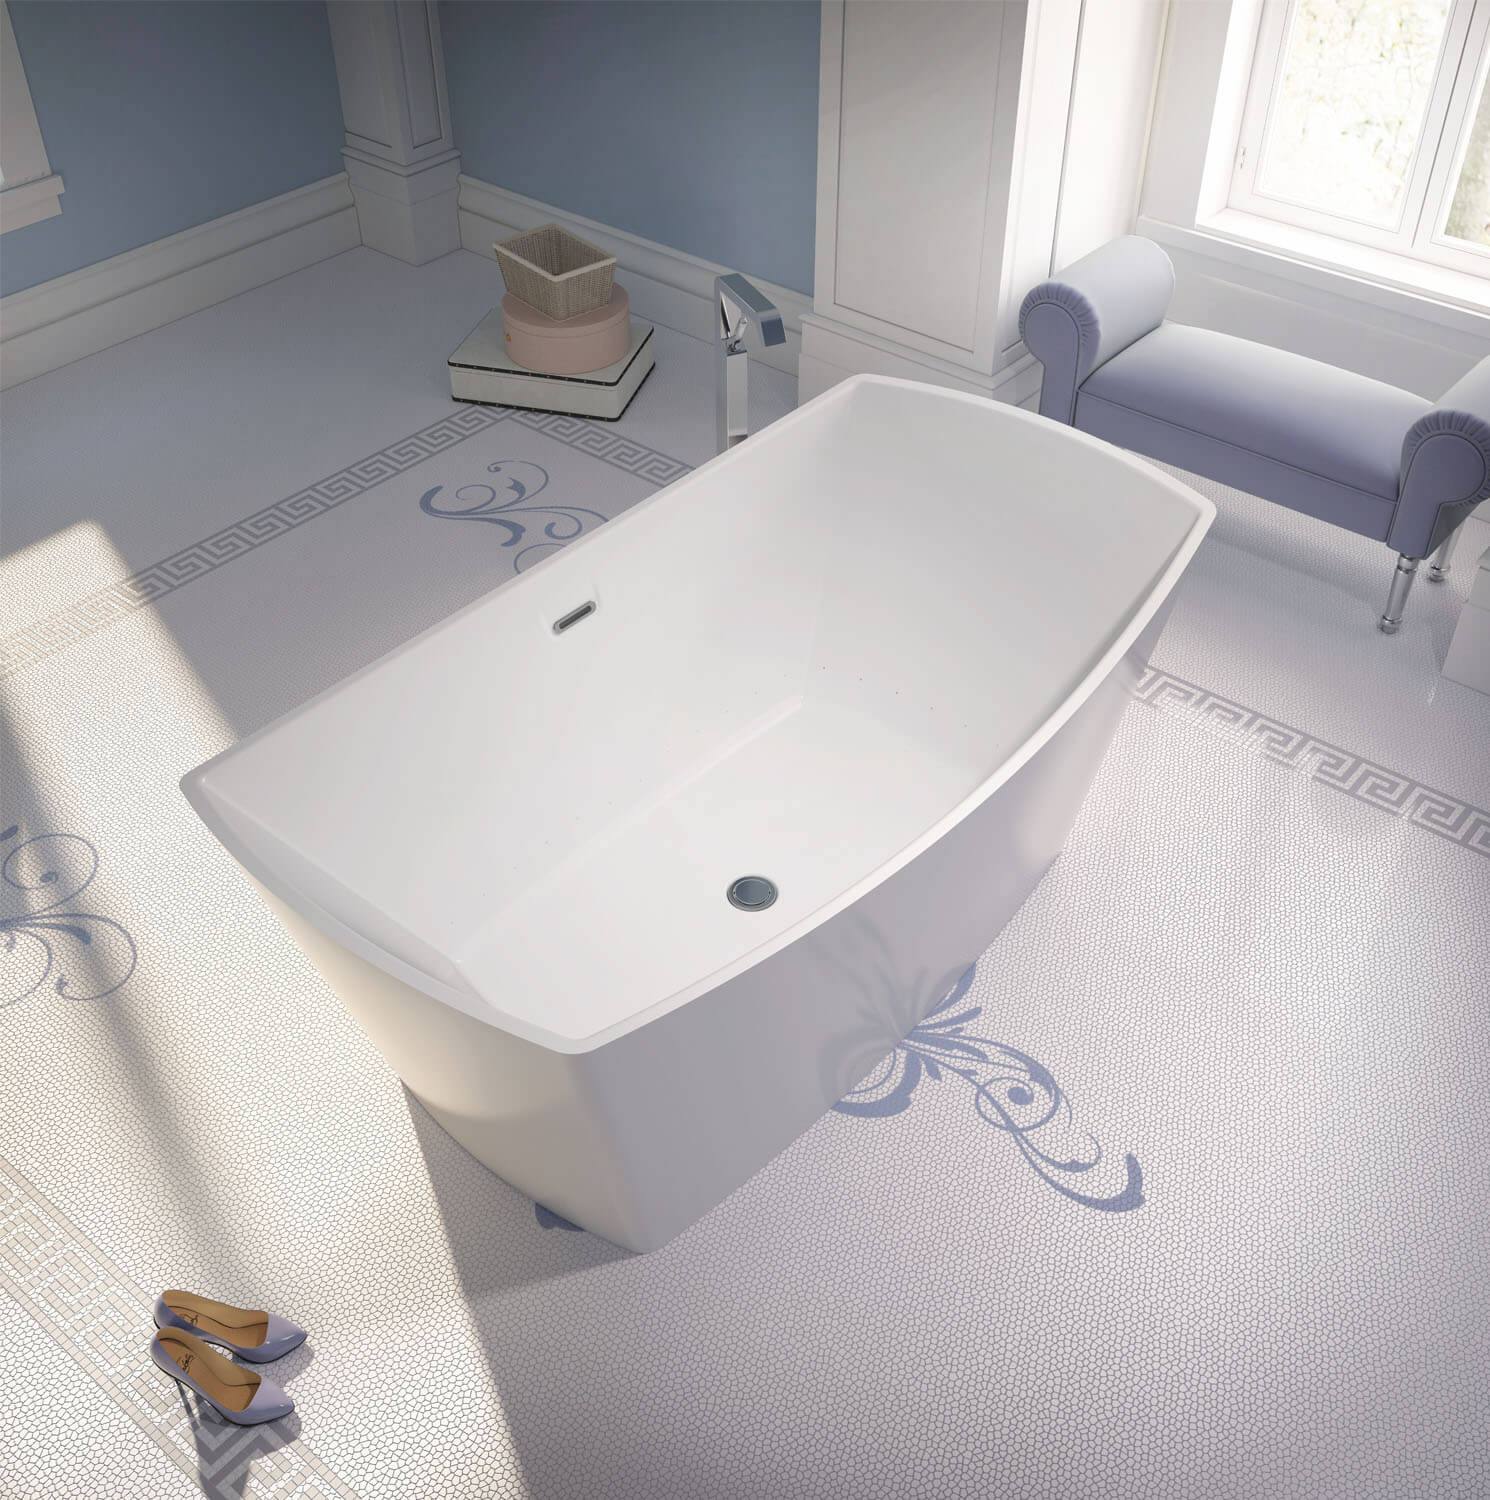 Bainultra Evanescence® 6634 two person freestanding air jet bathtub for your modern bathroom